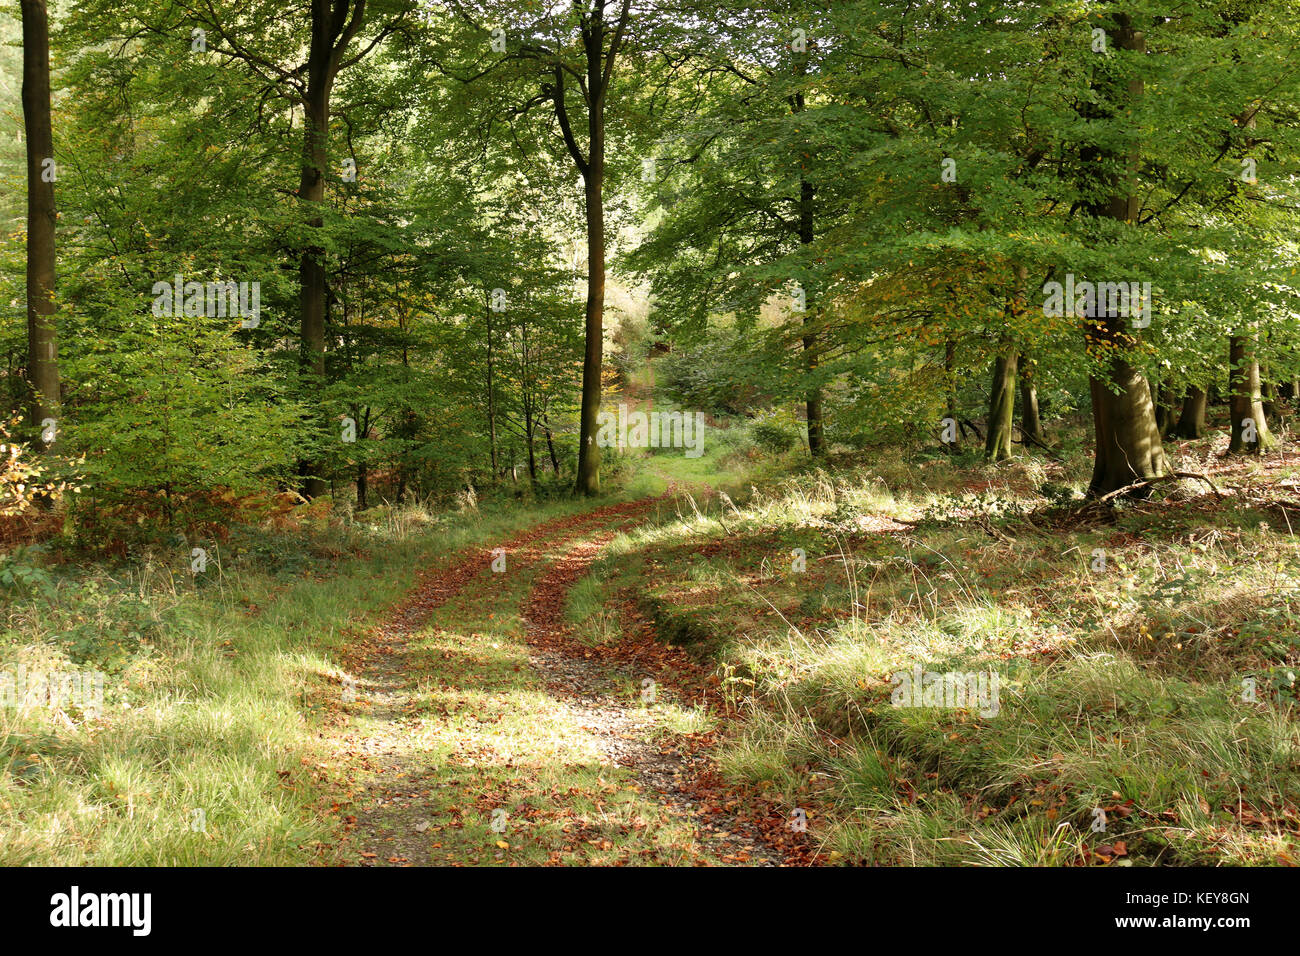 Autumn Woodland scene in the Chiltern Hills in England with leaf strewn track between the trees - Stock Image